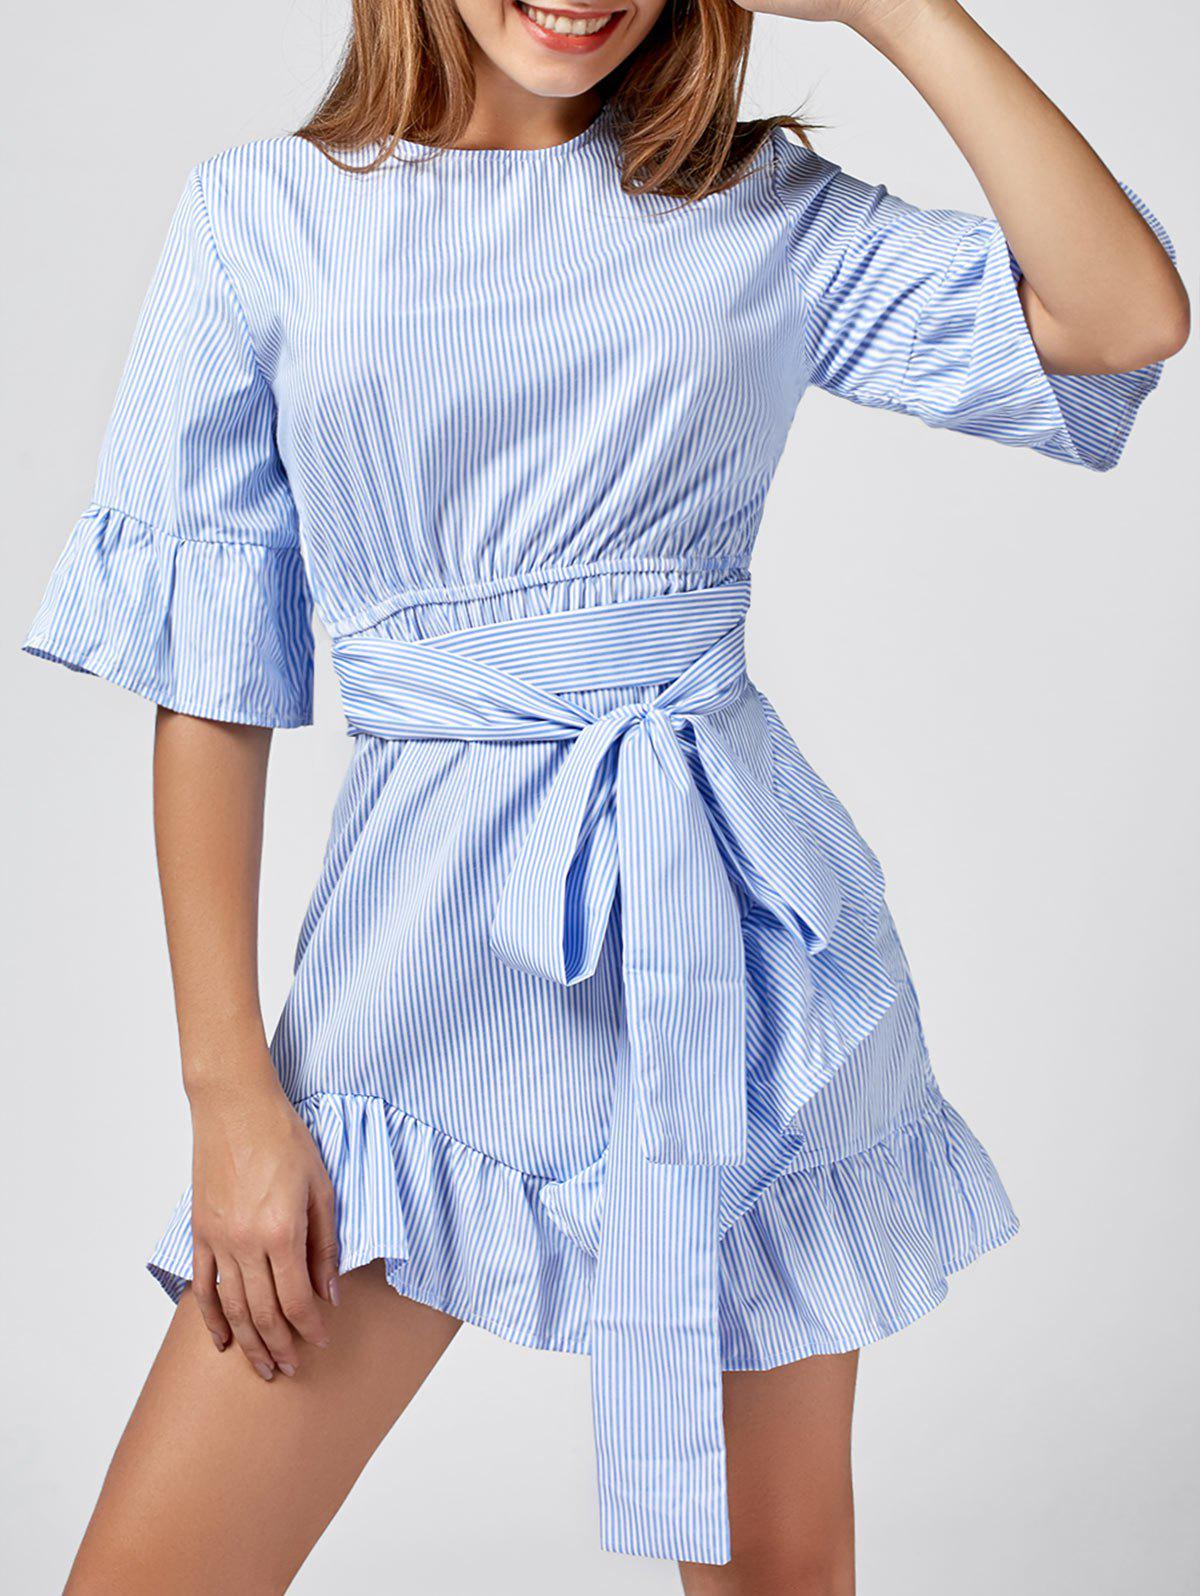 Stripe Ruffle Trim Mini Dress - Bleu XL